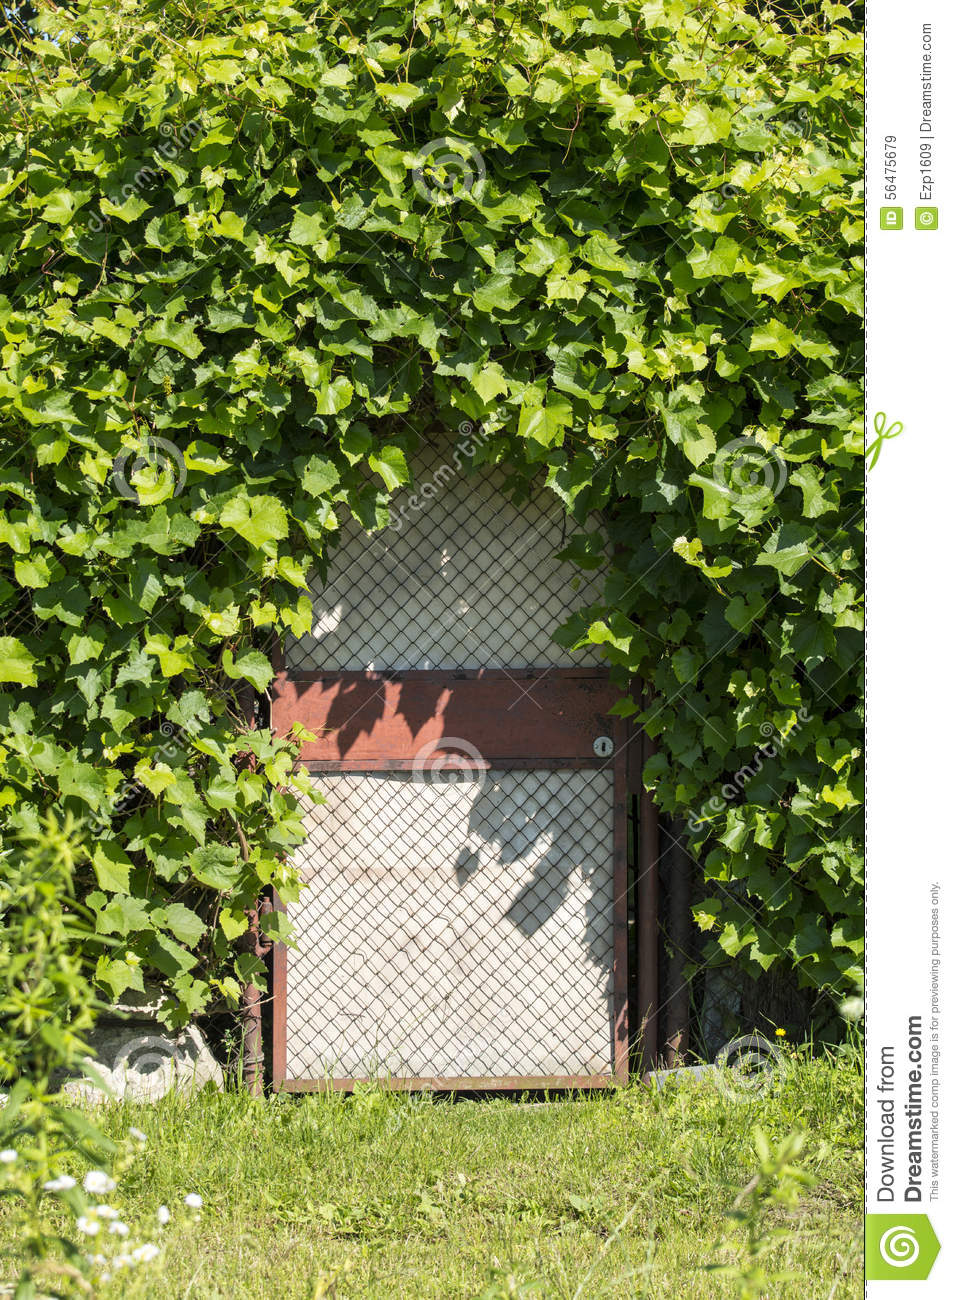 La porte au jardin secret photo stock image 56475679 for Au jardin secret